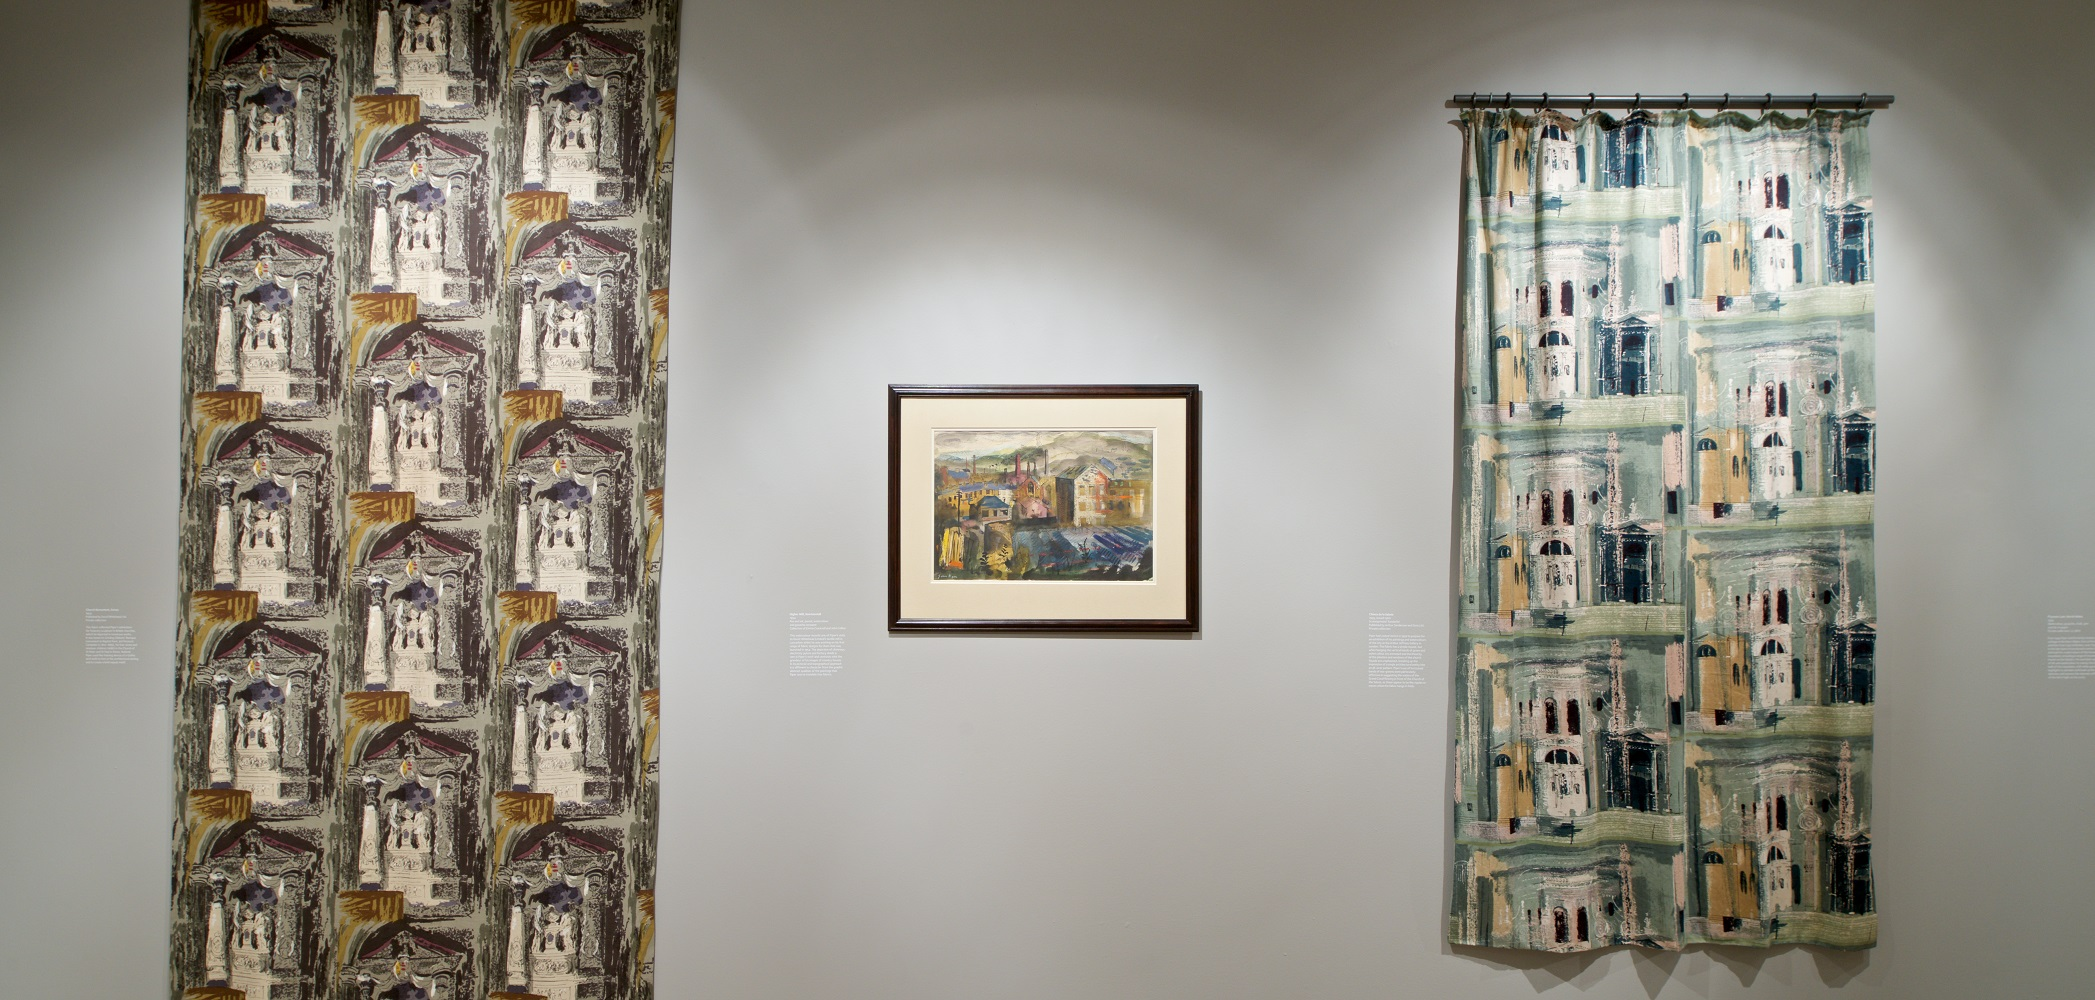 View of interior of gallery showing two lengths of cloth with two different abstract designs. Between them is a painting showing a mid-century urban landscape.